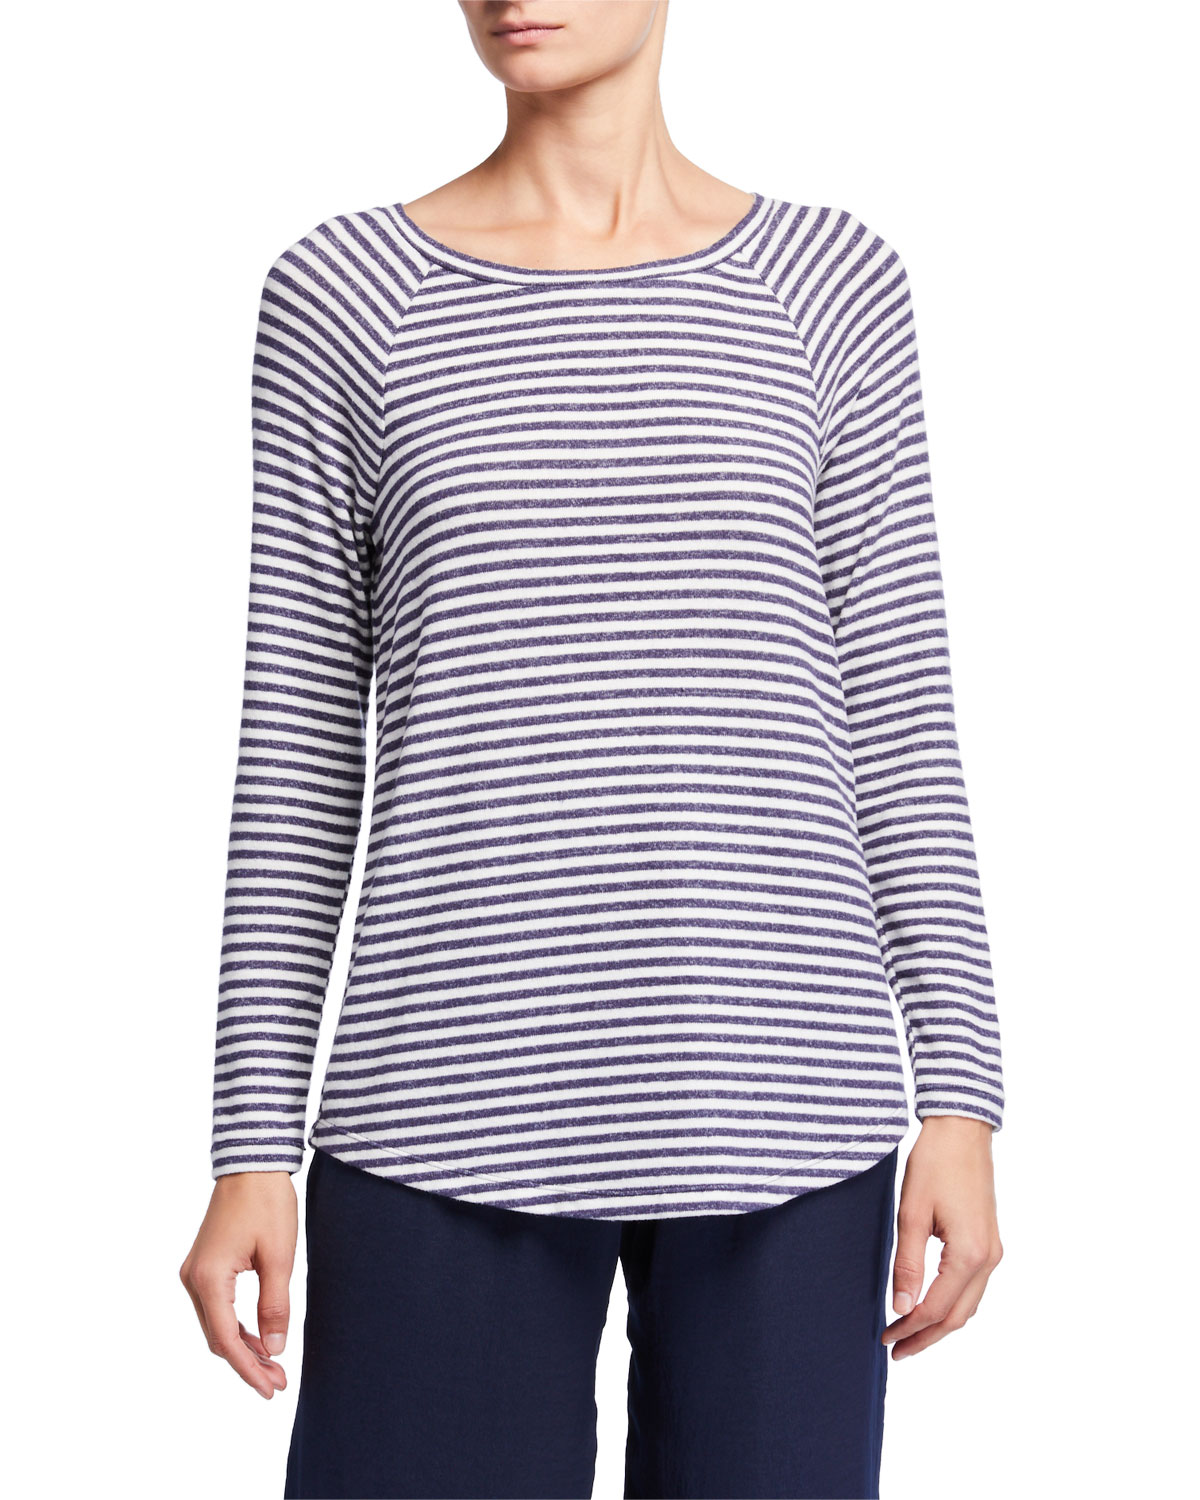 NIC + ZOE PETITE RELAX IN STRIPED LONG-SLEEVE TOP